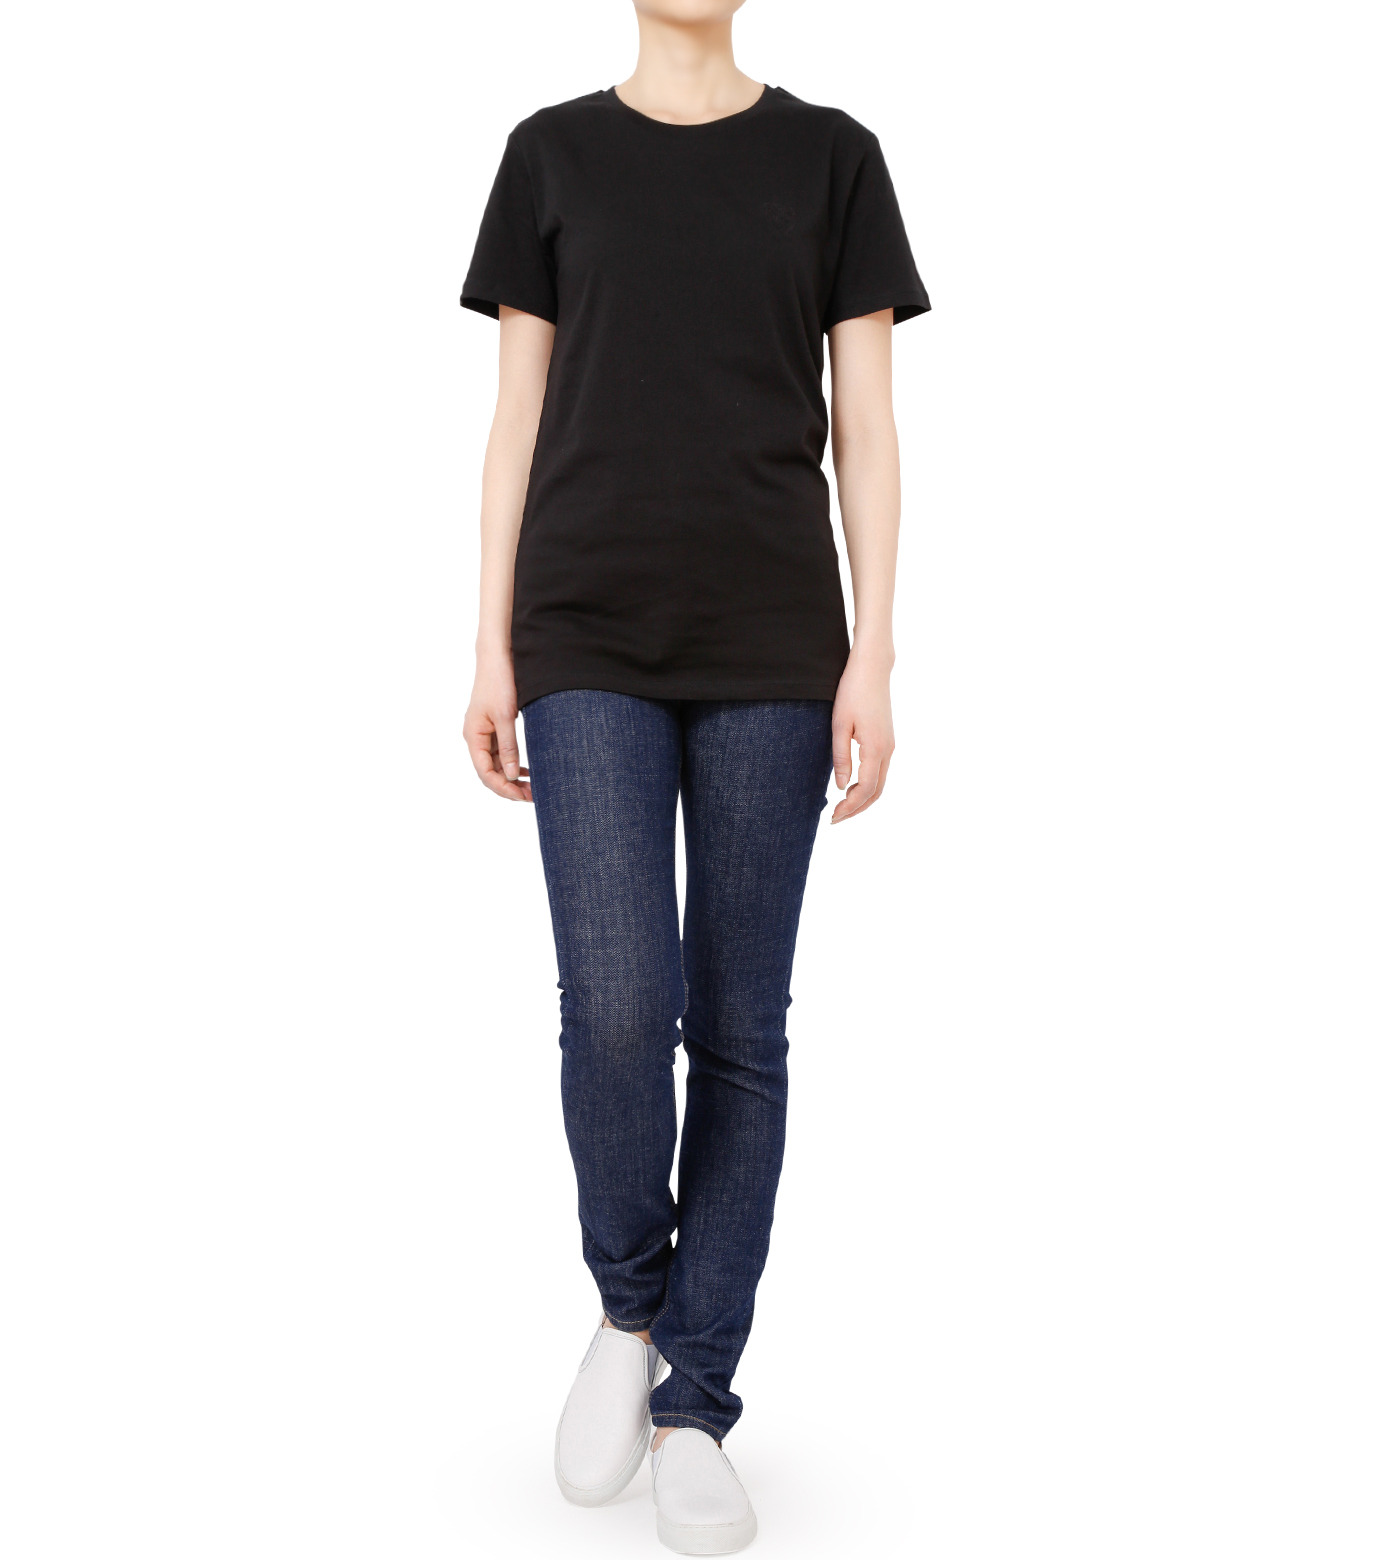 No One(ノーワン)のEmblem T-shirt-BLACK(カットソー/cut and sewn)-SS980B-13 拡大詳細画像3